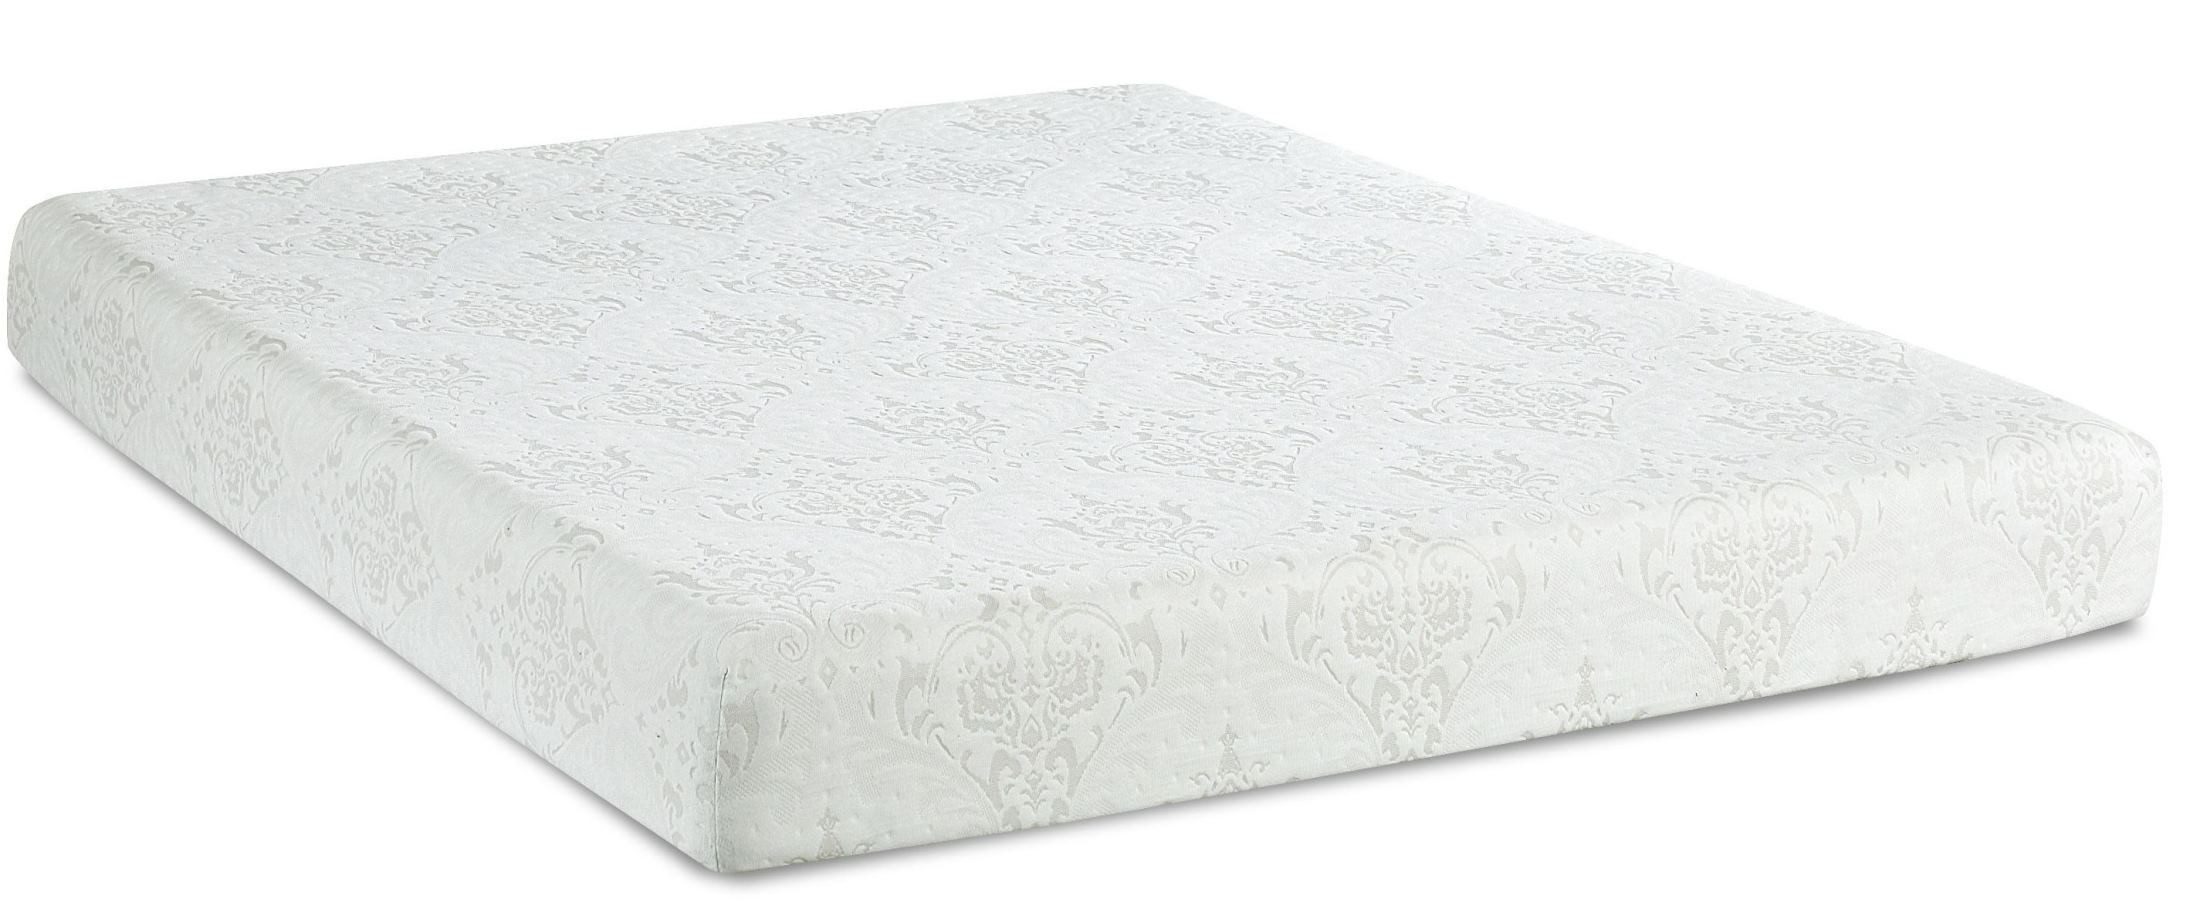 "Hampton 8"" Memory Foam Twin Mattress from Klaussner"